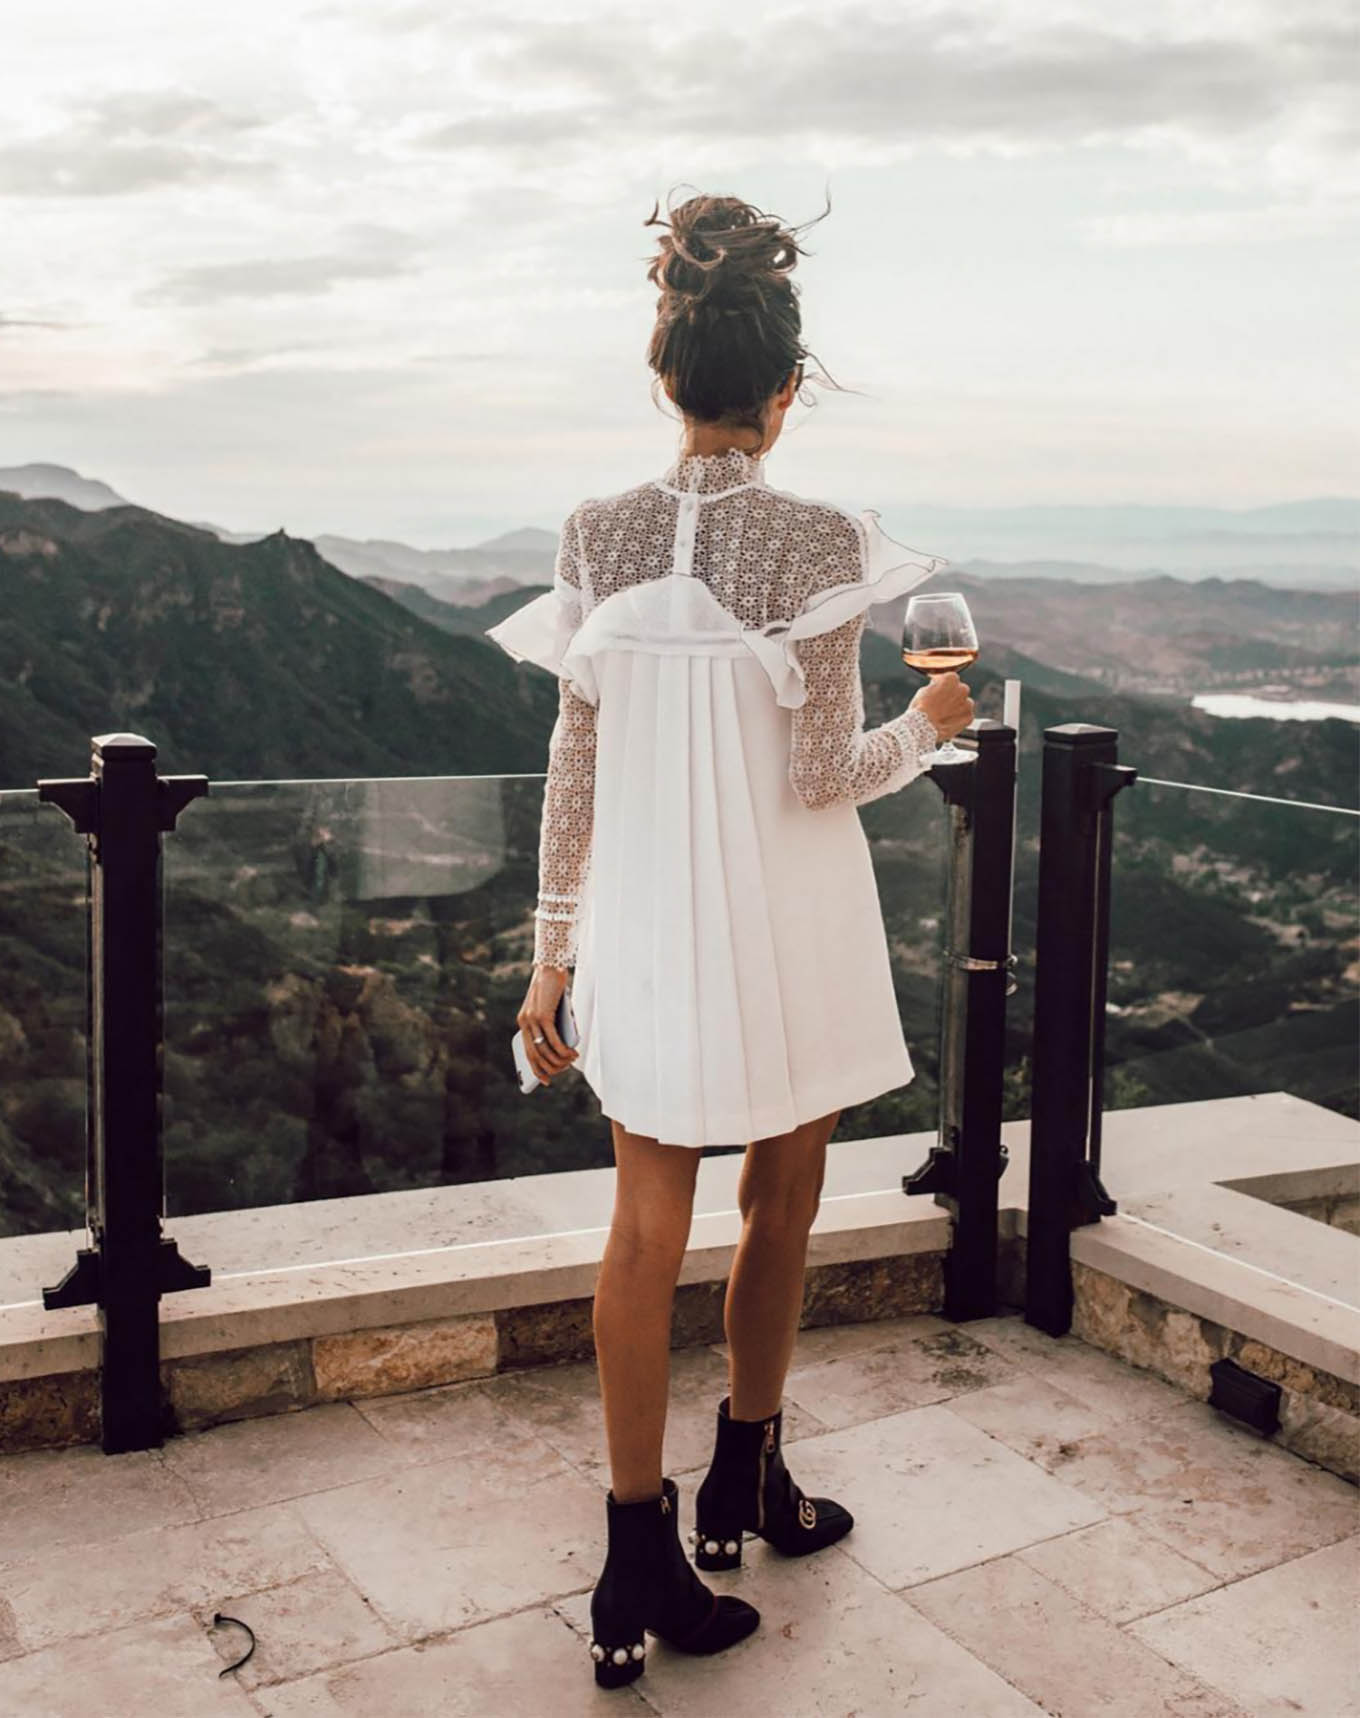 white dress and black boots